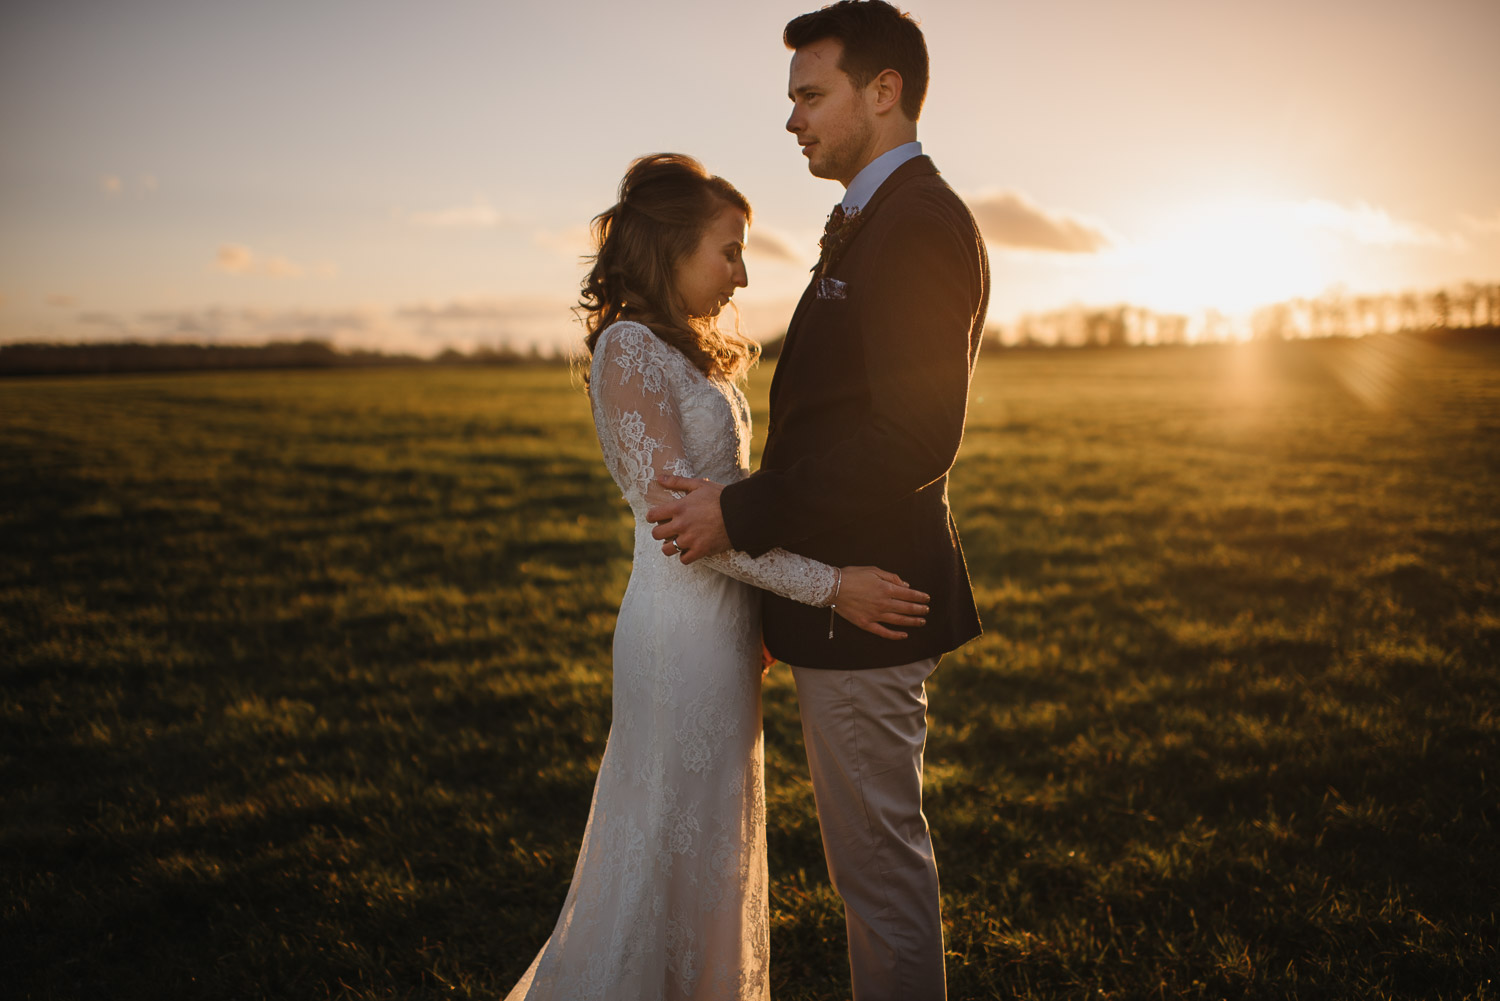 cripps barn sunset with bride and groom by creative and alternative london wedding photographer the shannons photography